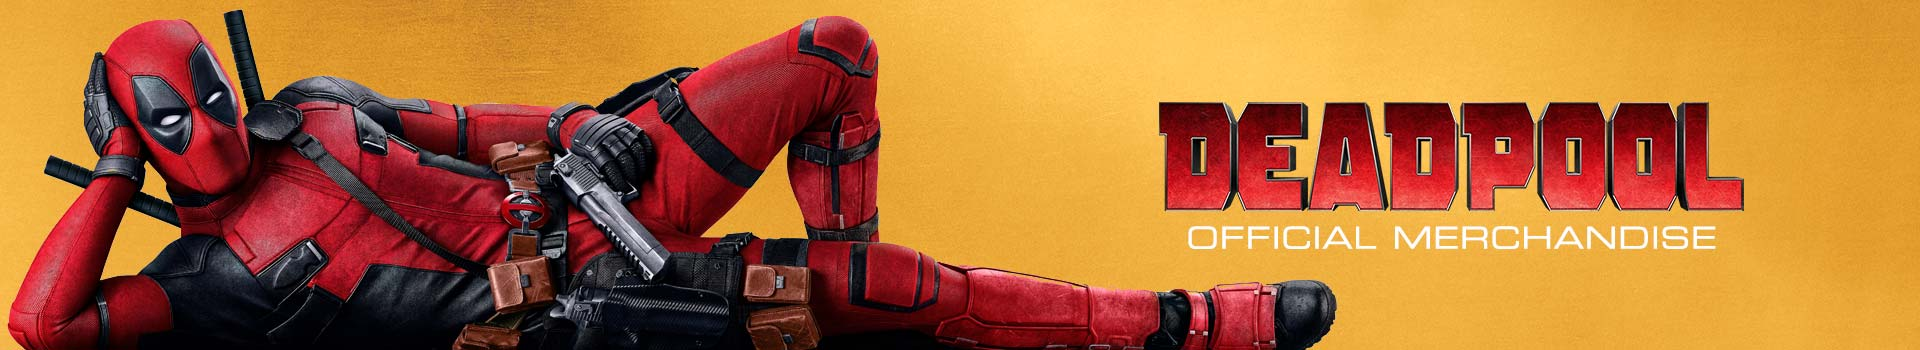 Deadpool top banner